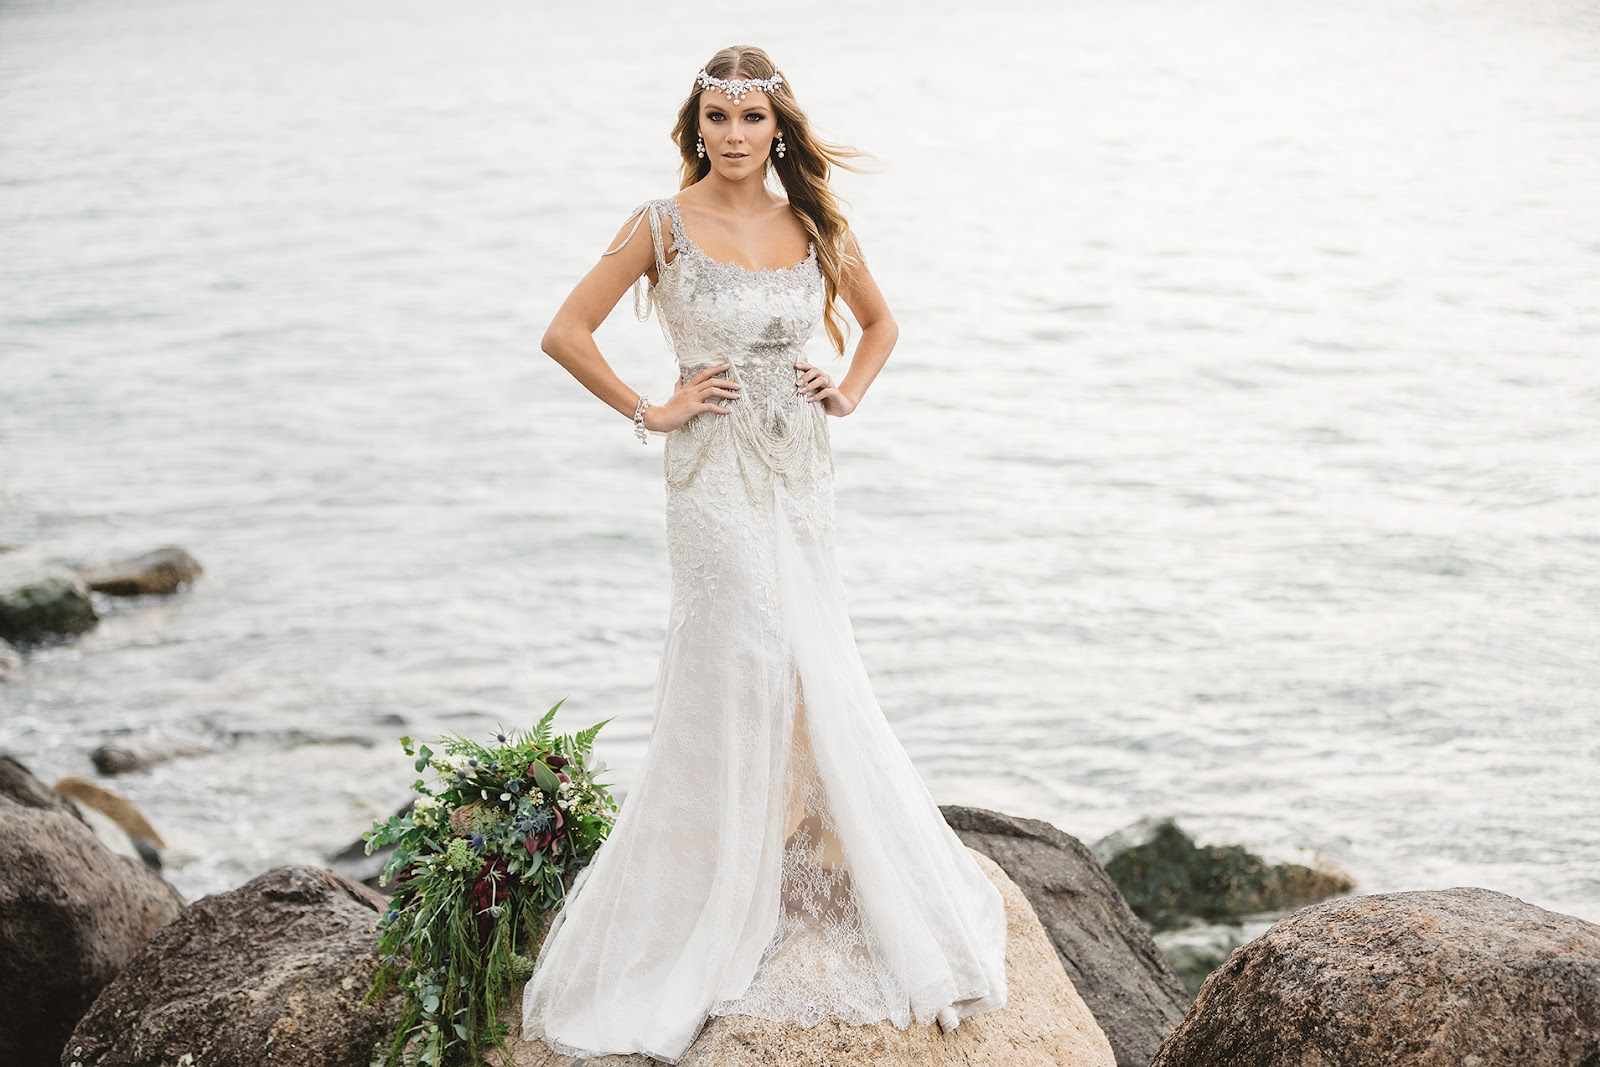 Bridal Couture designer Gold Coast